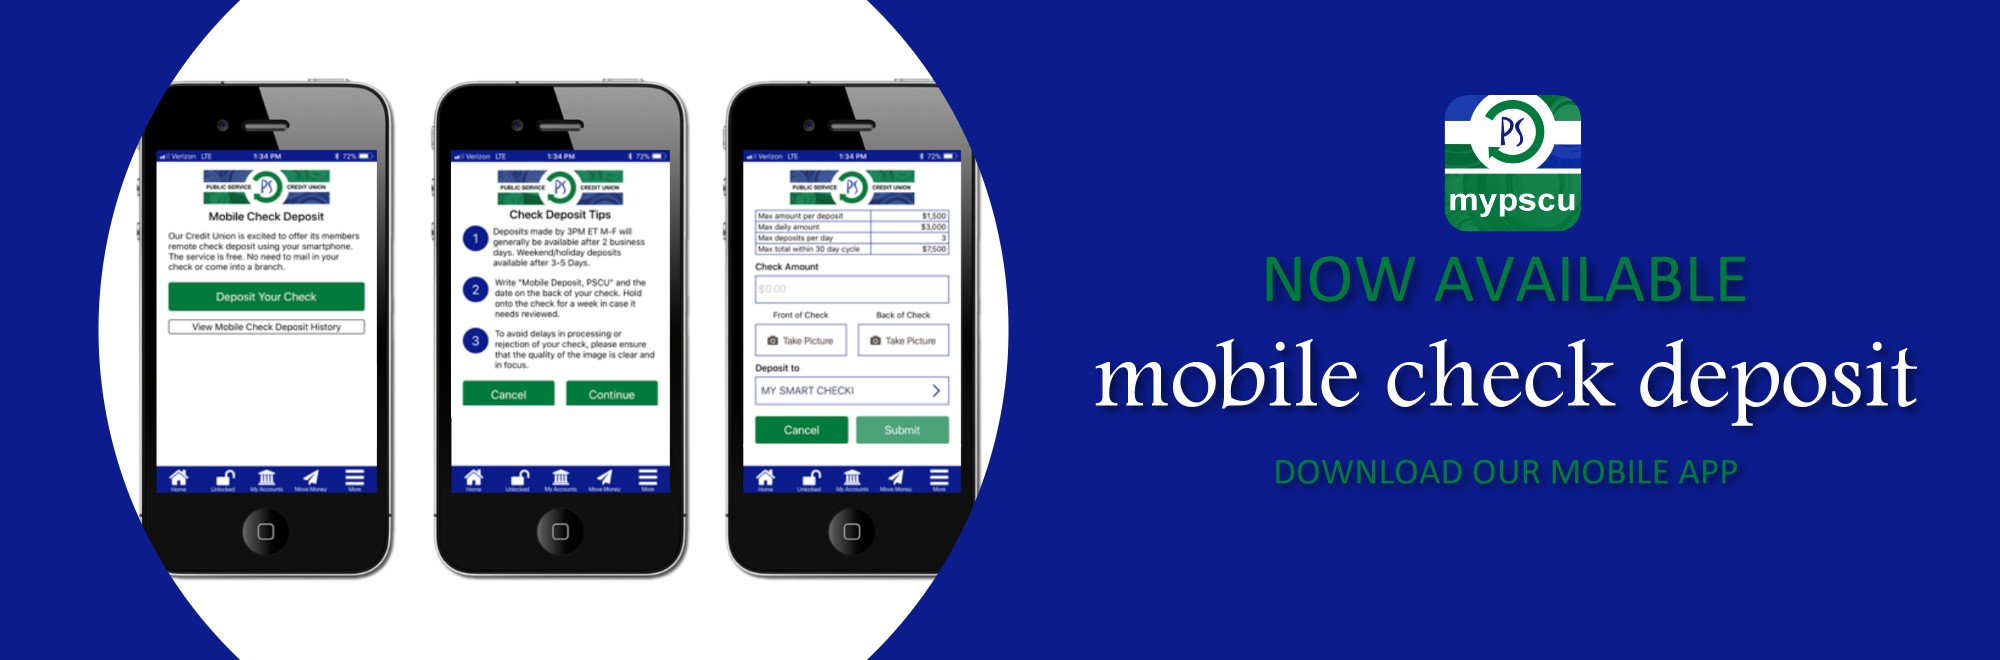 Mobile Check Deposit Available banner image